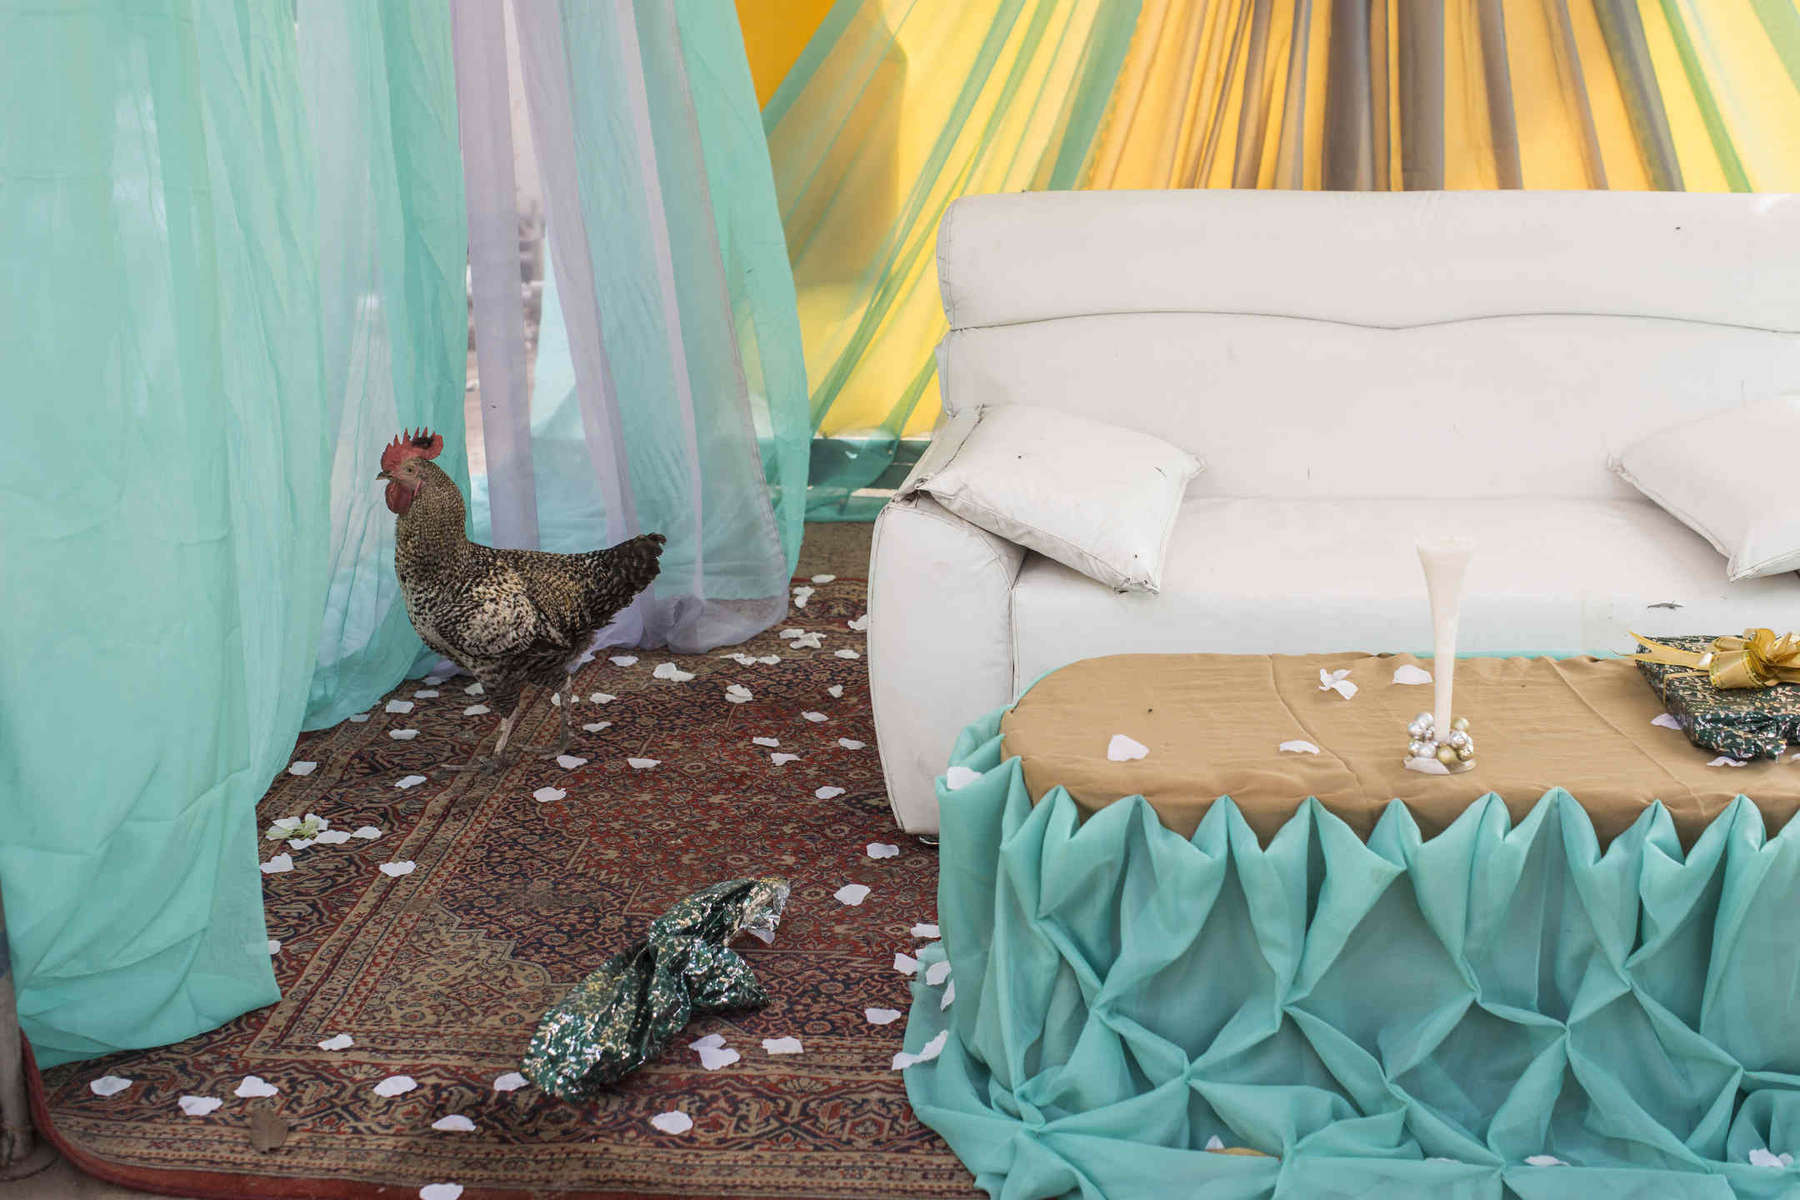 A chicken runs through the bridal tent in Yaba, a working class neighborhood in Lagos, Nigeria.